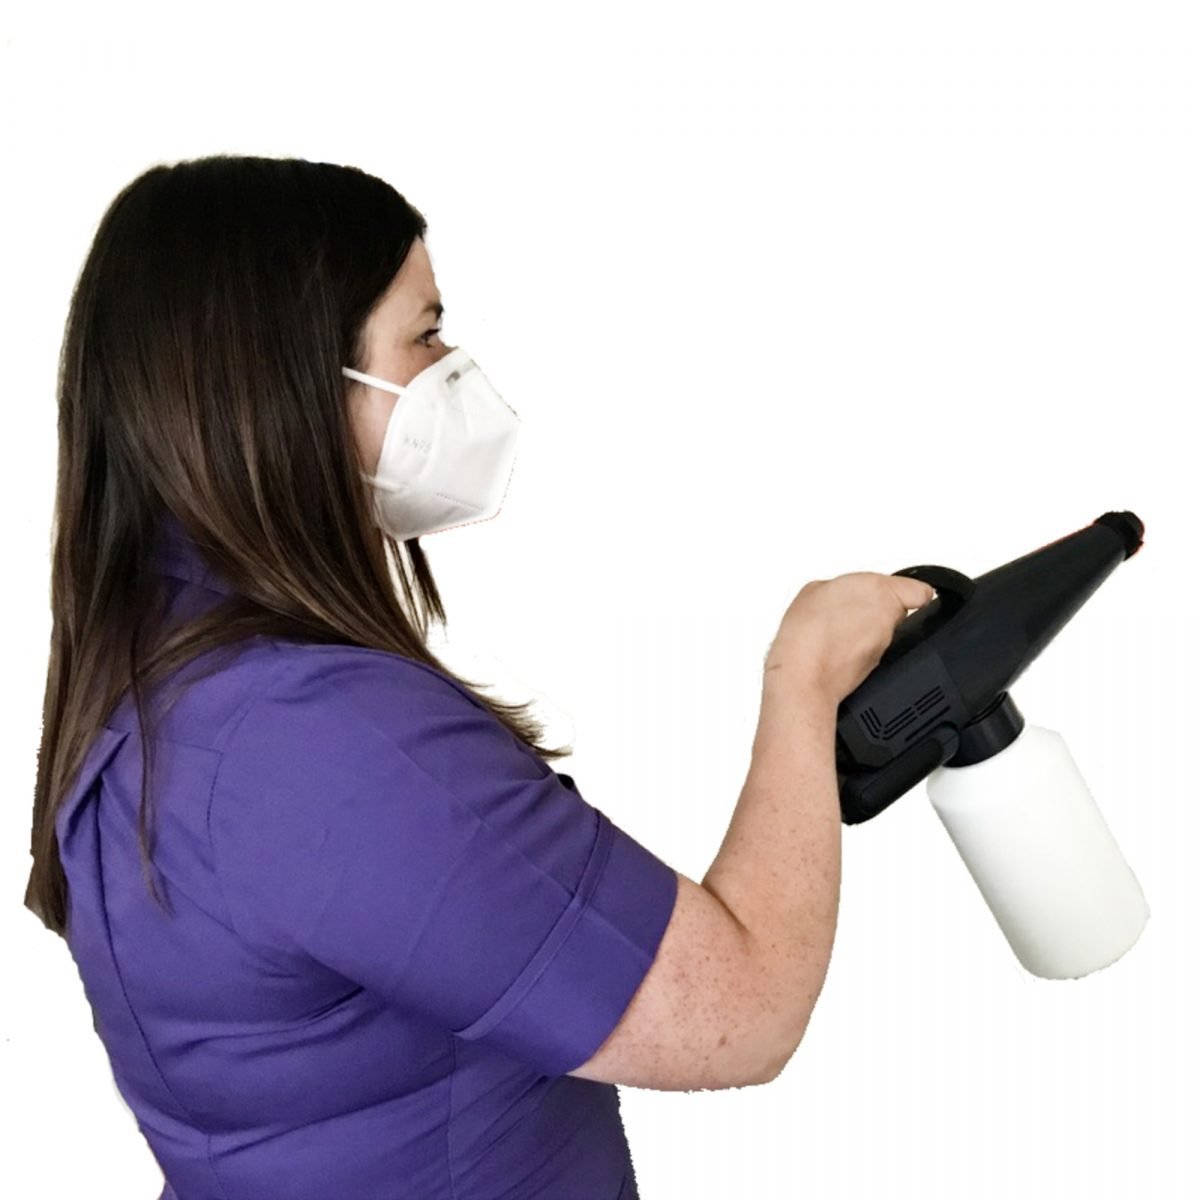 A lady using the GG 1800 Portable Fogger